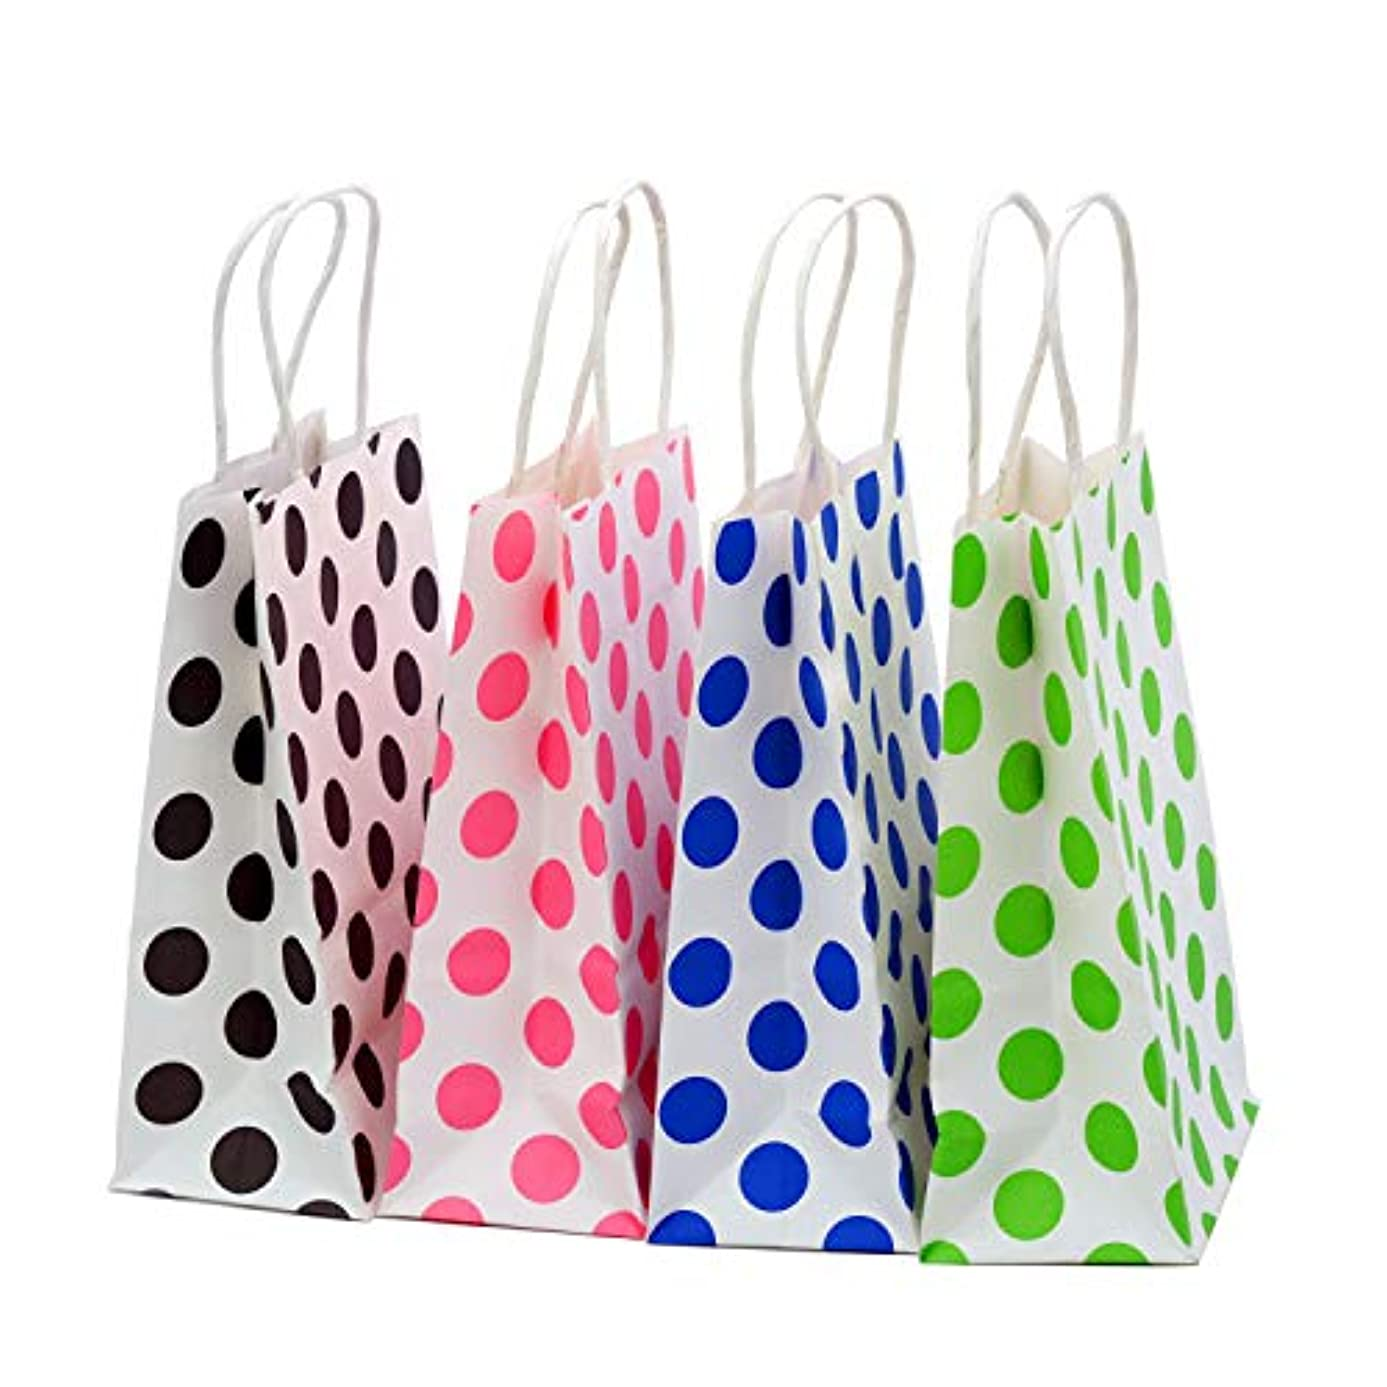 24 Pieces Kraft Paper Gift Bags with Handles (Polka Dot)